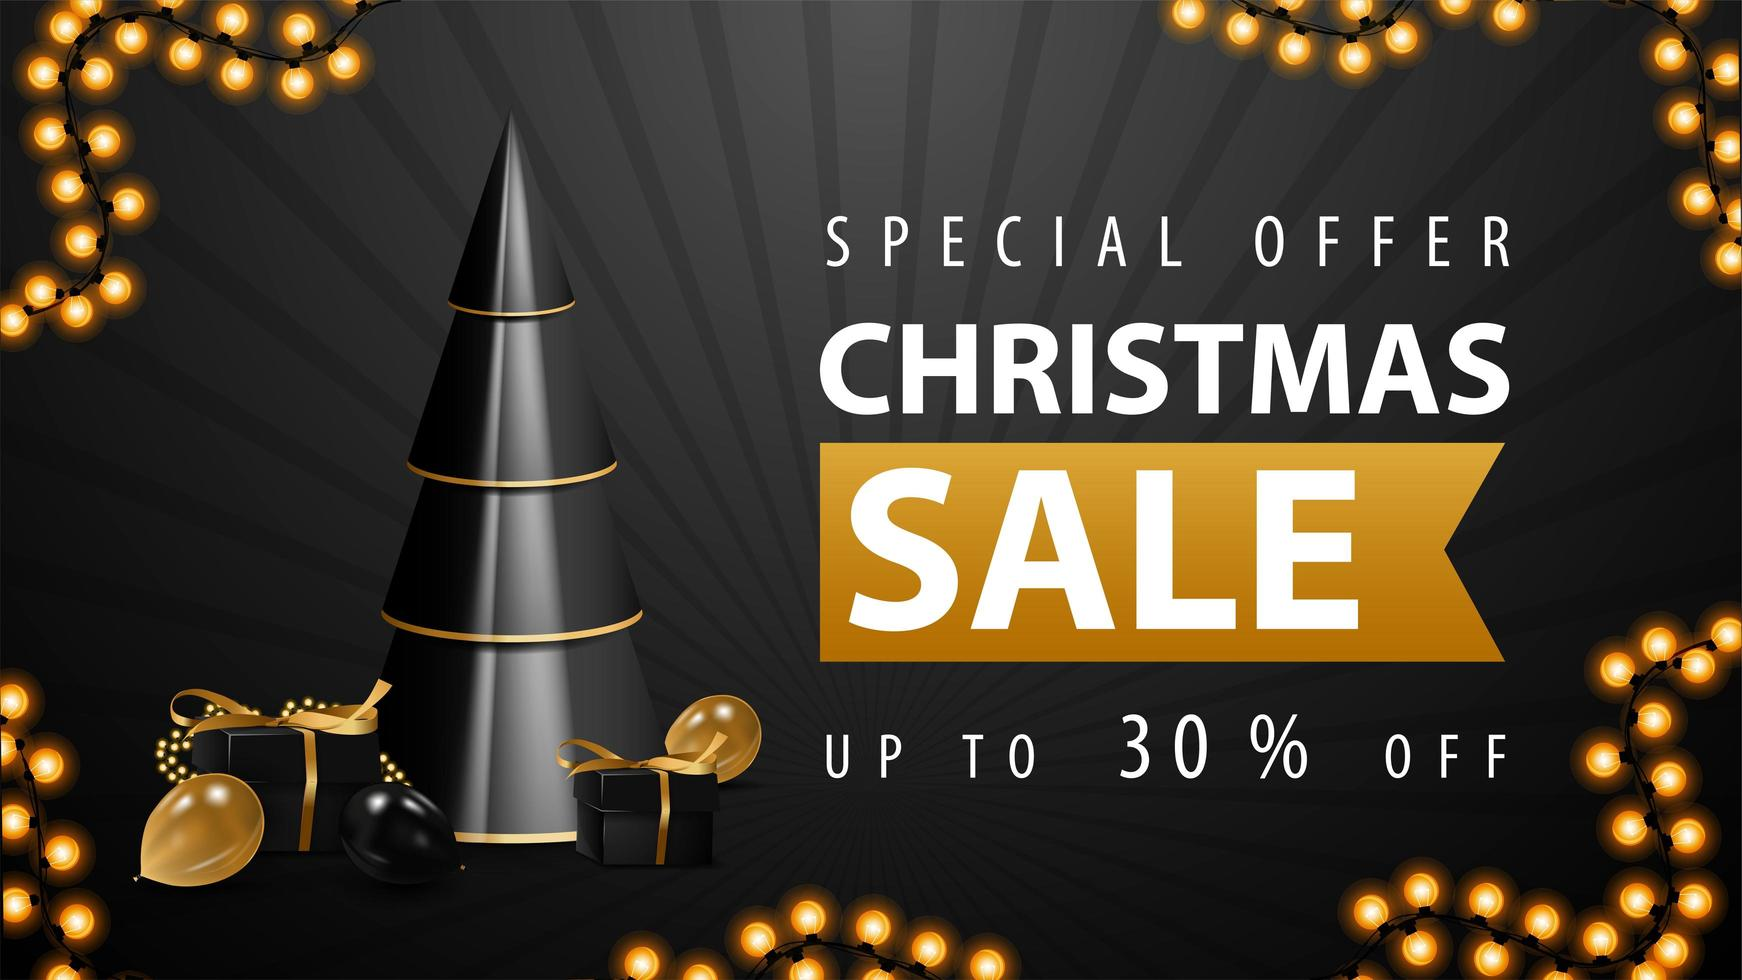 Special offer, Christmas sale, up to 30 off, white and black discount web banner with volumetric geometrical Christmas tree with presents in black and gold colors vector